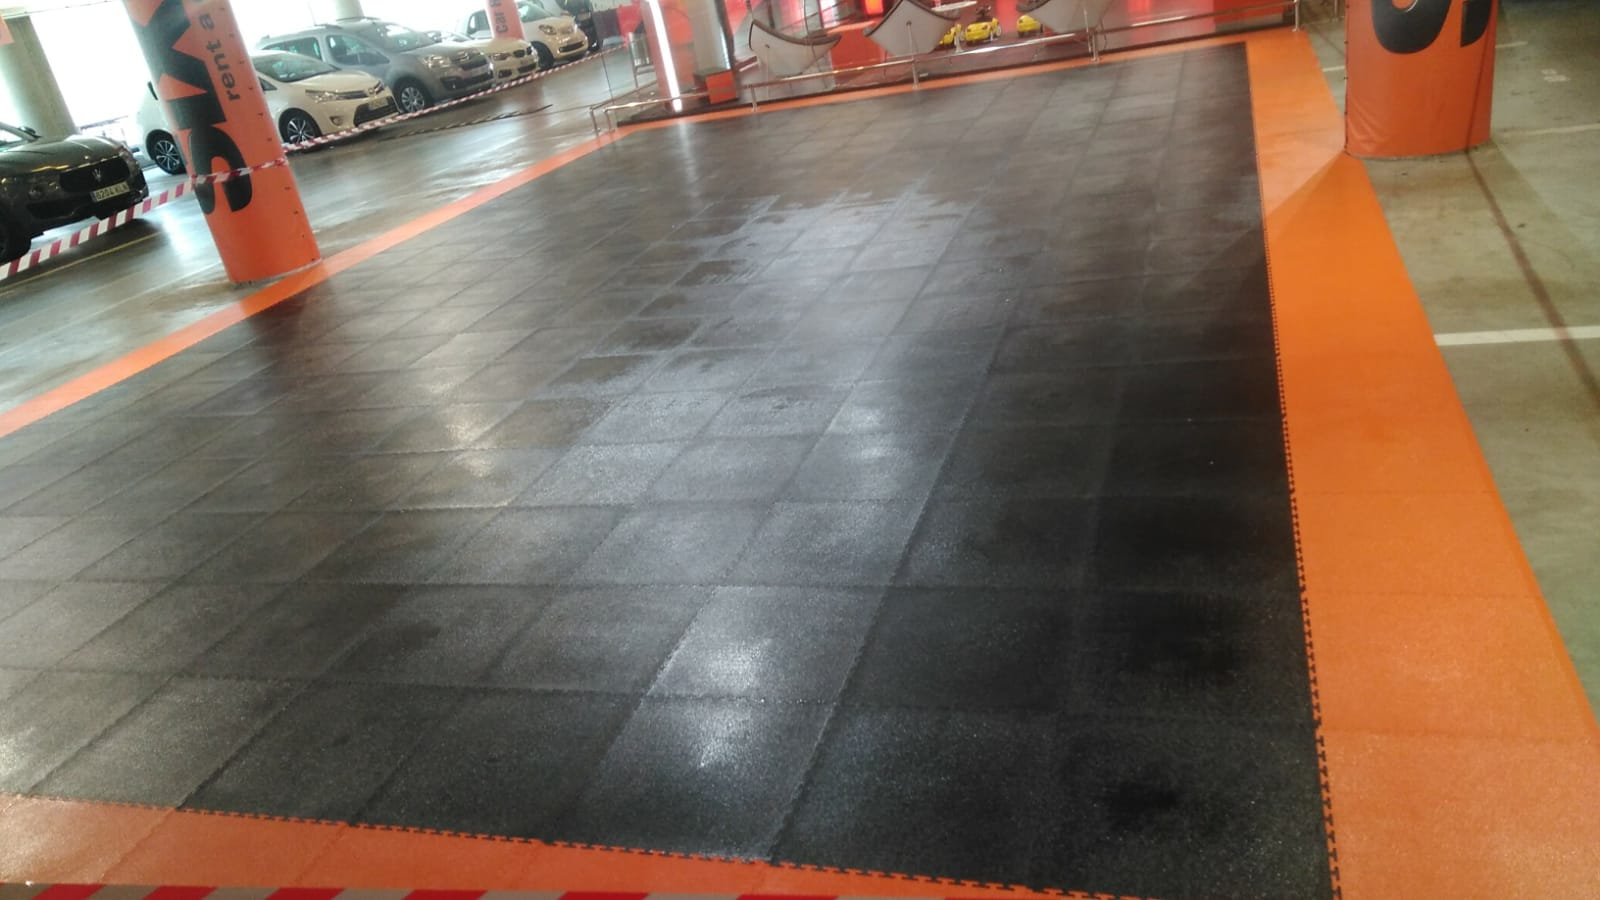 sixt t1 parking reforma 5